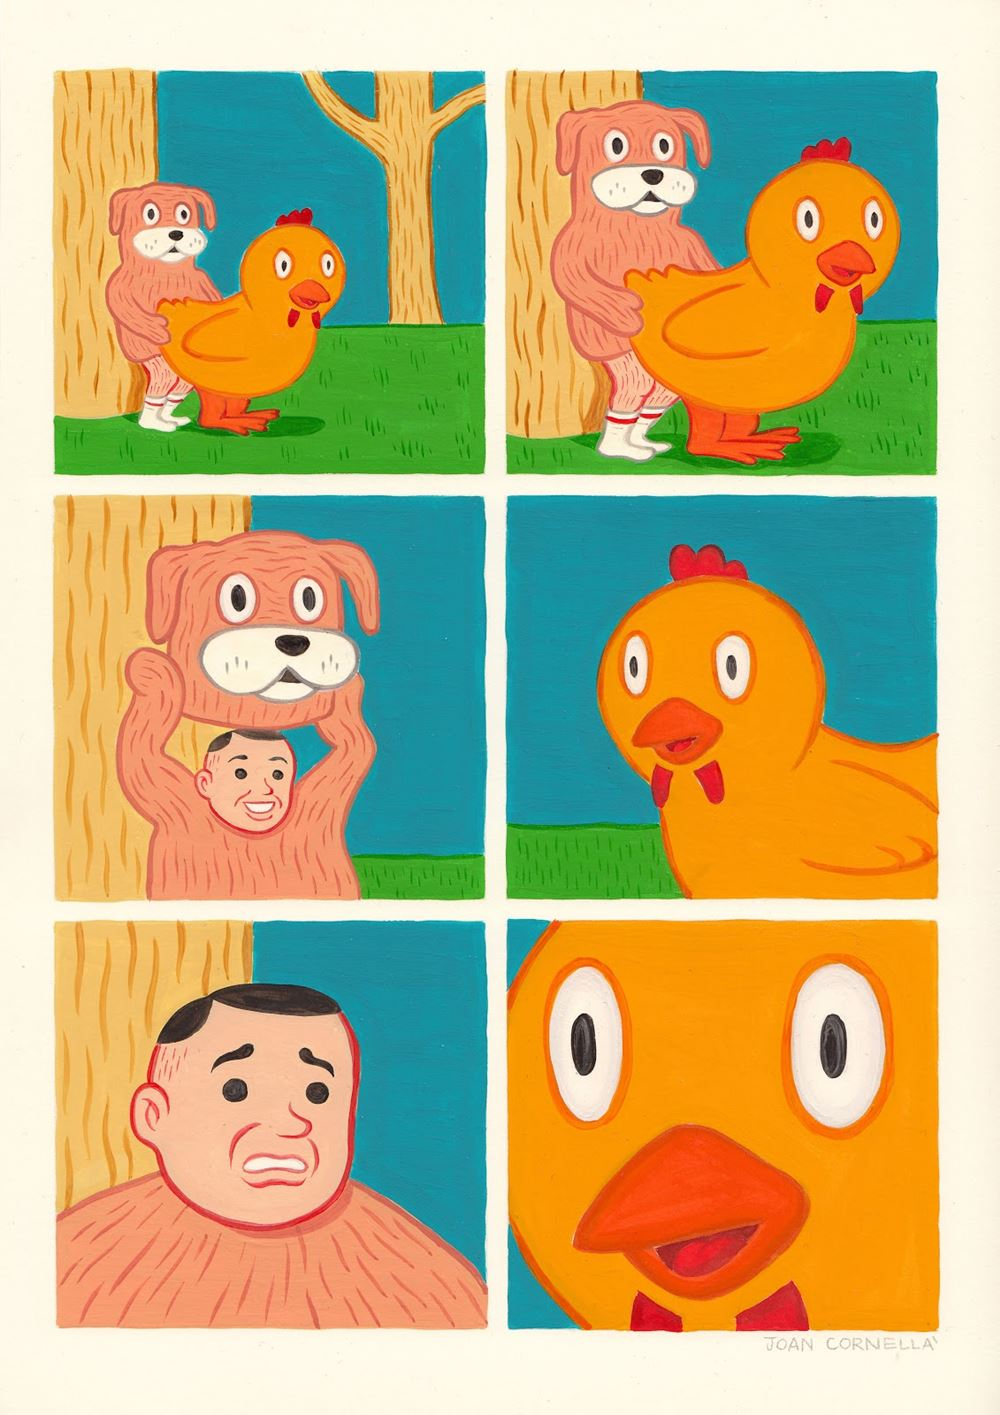 http://www.funnyjunk.com/10+joan+cornella+comics+explained/funny-pictures/5337117/